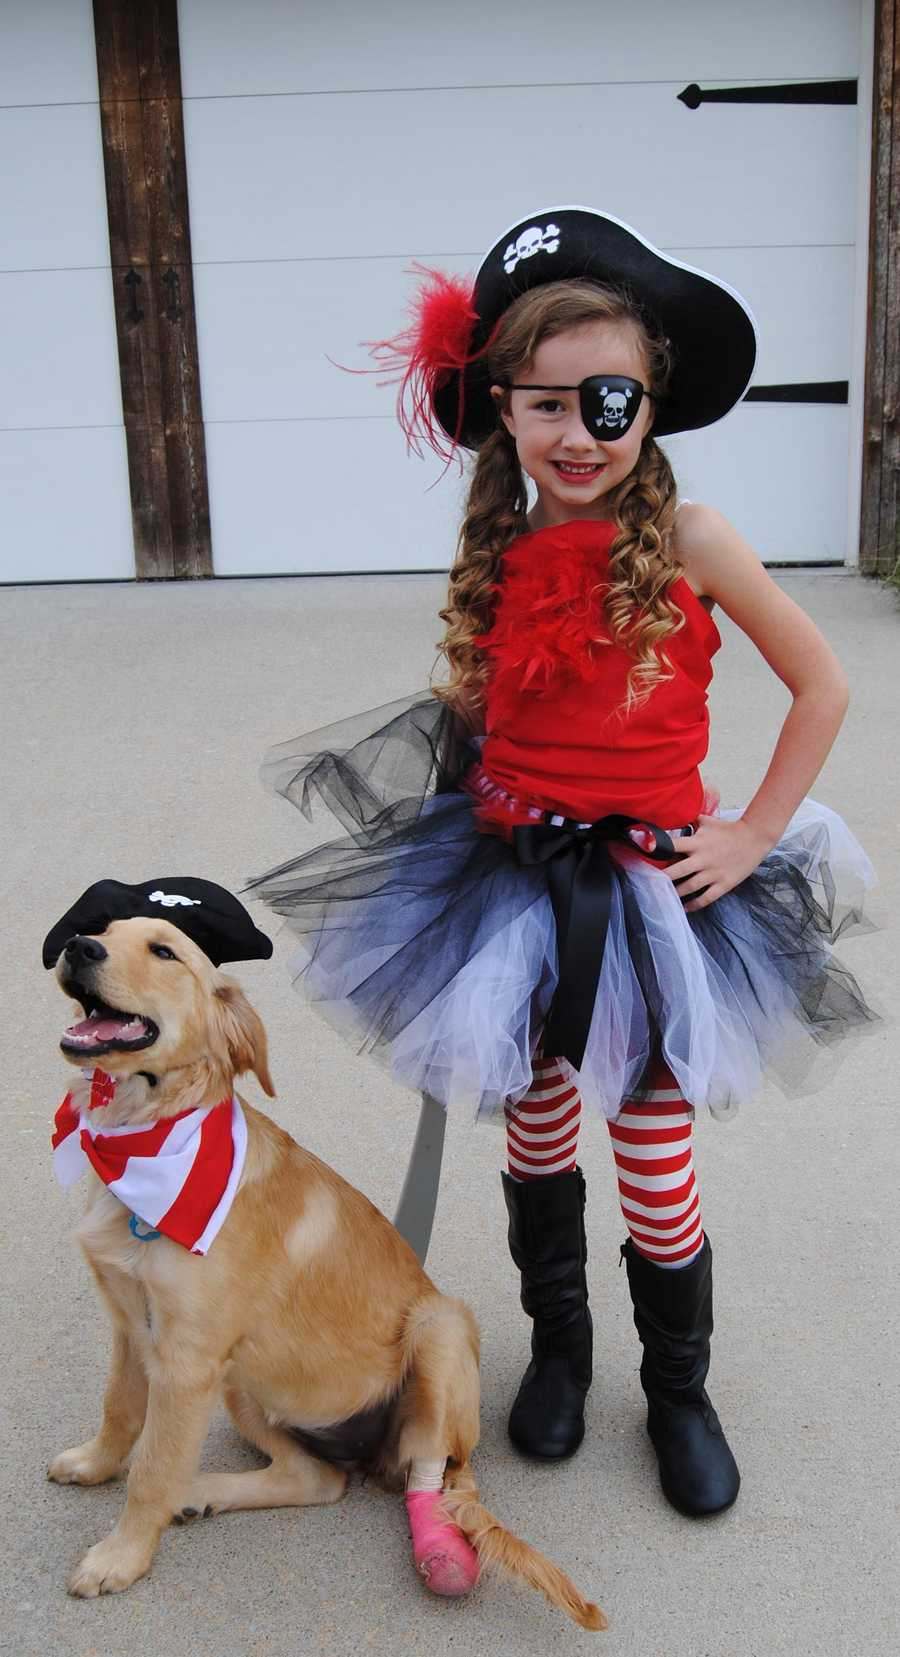 Macey & Winnie dressed up as pirates for Halloween!